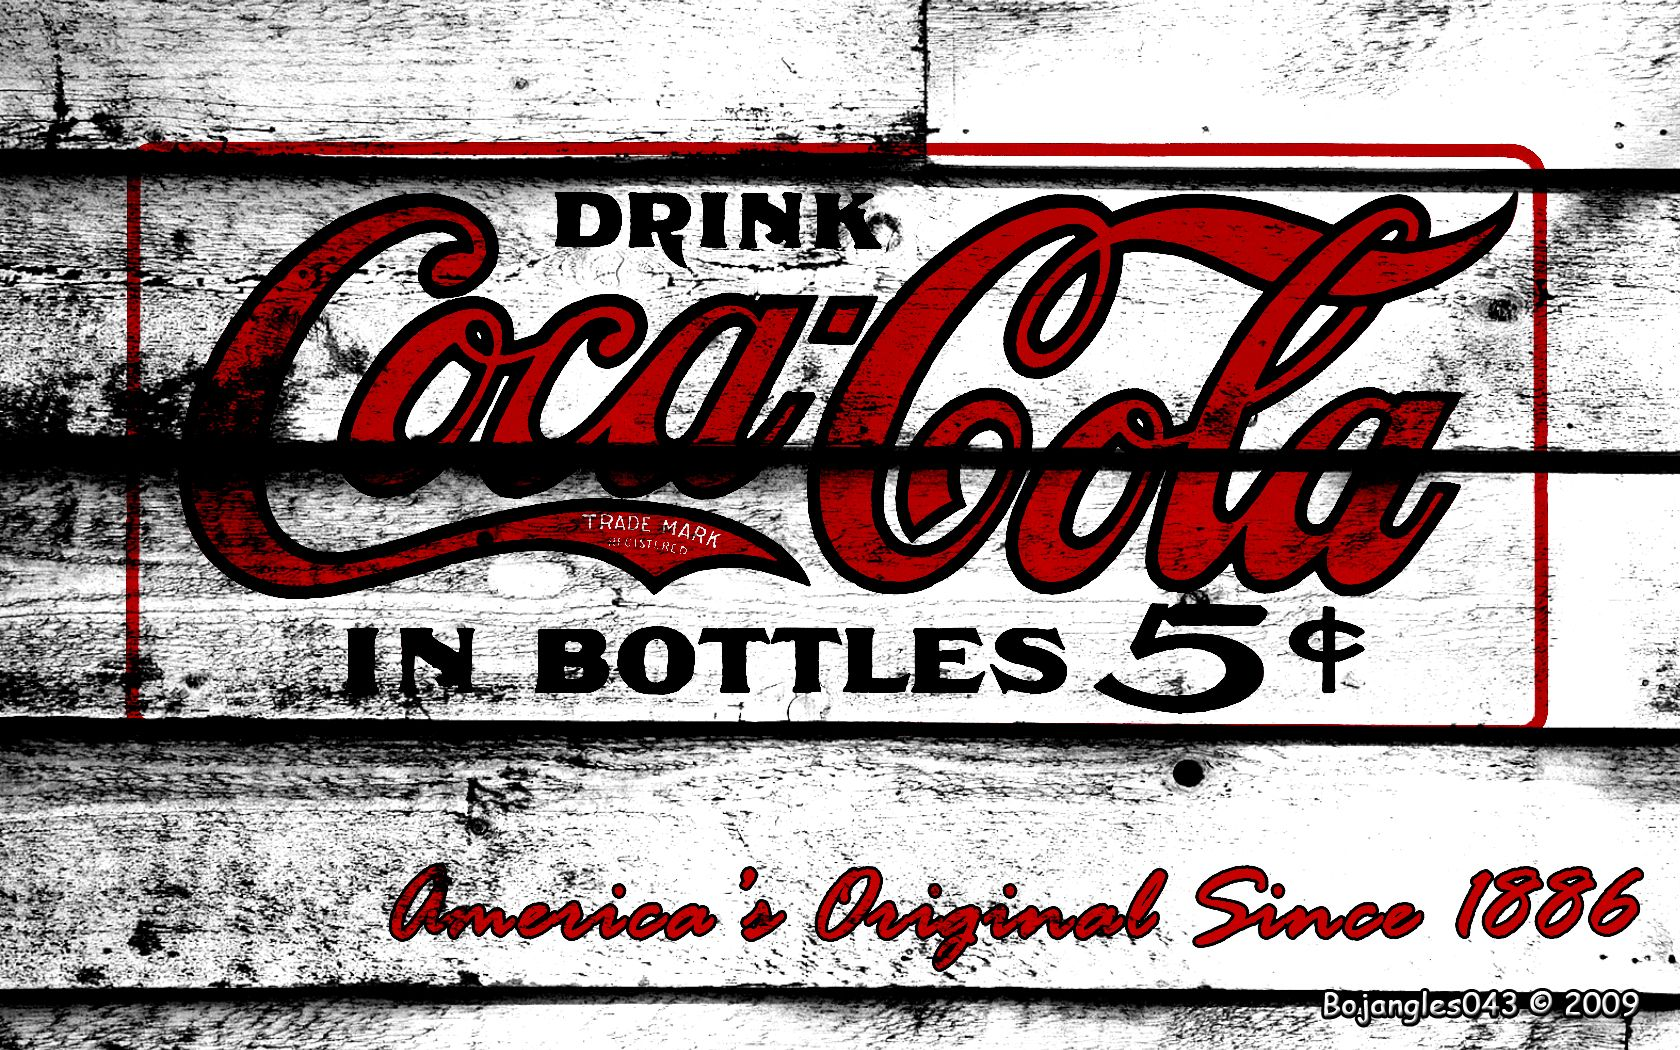 Free download vintage coca cola world collection free wallpaper cool - Vintage coke wallpaper ...